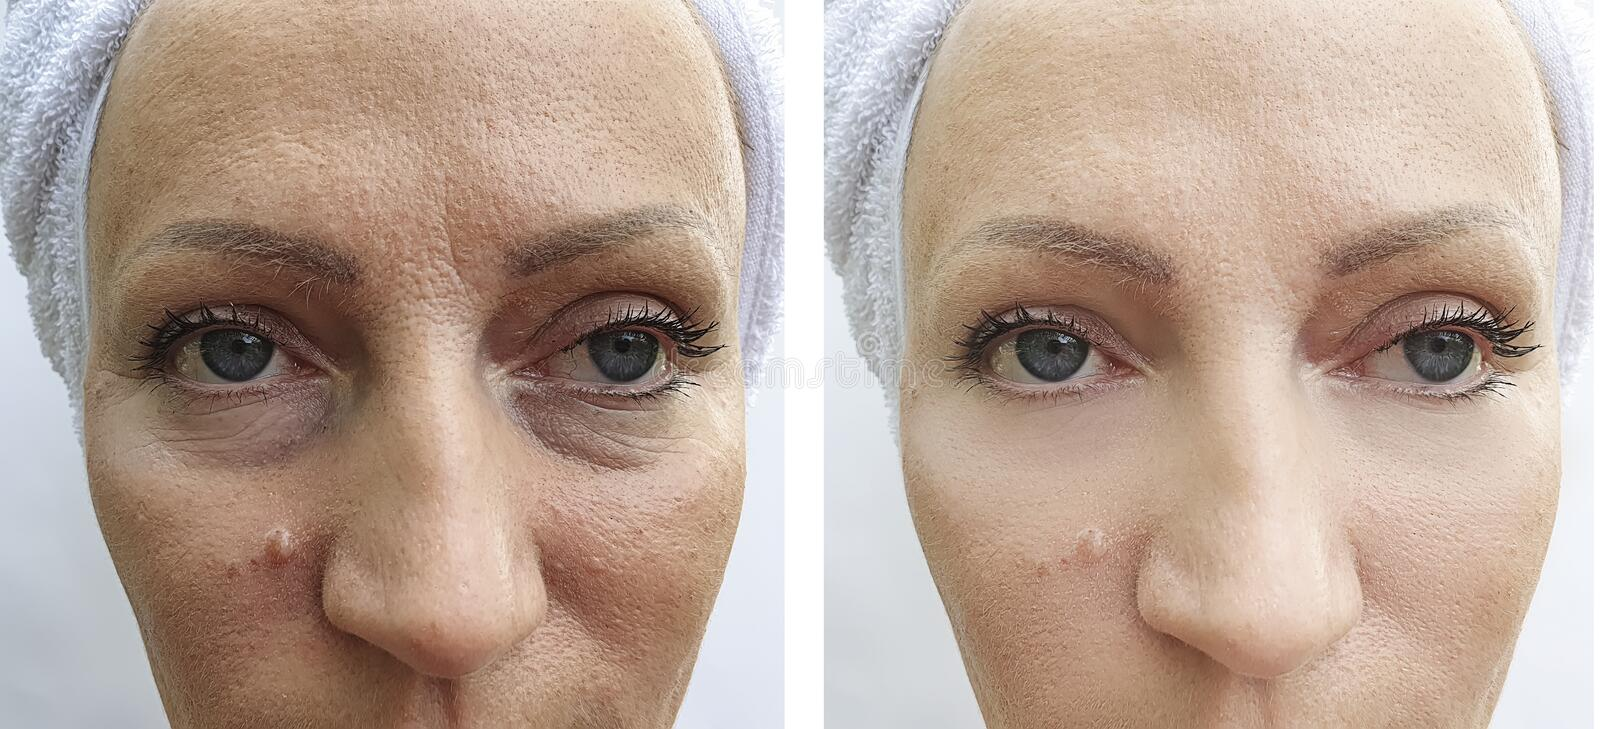 Woman wrinkles removal before and after regeneration patient lifting tension procedures correction. Woman wrinkles  removal before after lifting procedures stock image